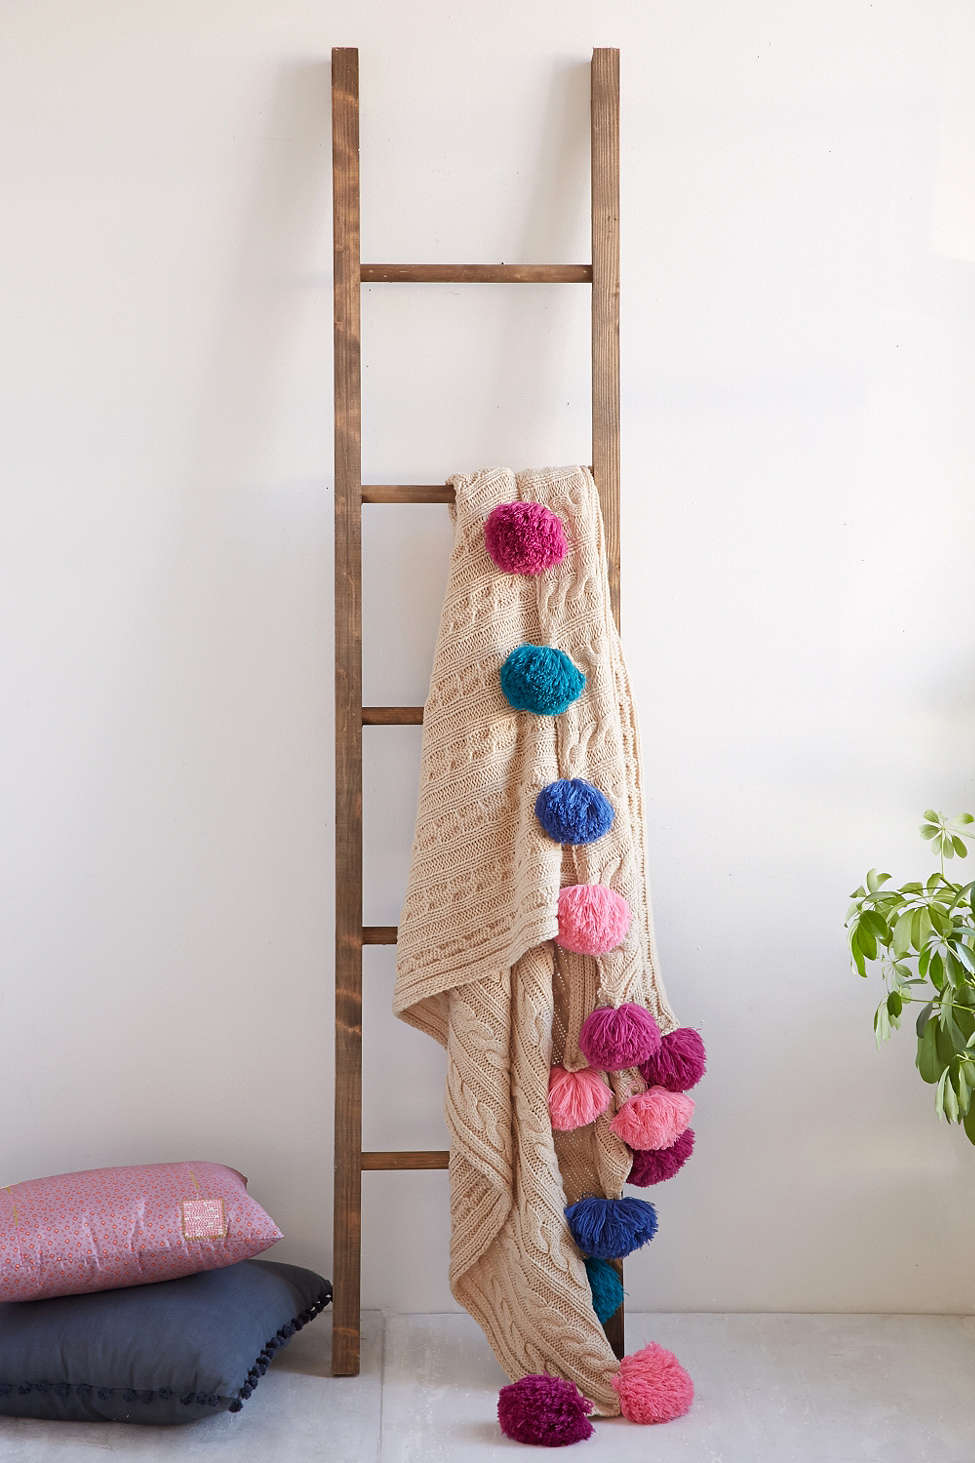 Ways To Style A Ladder Blanket Rack In Your  living room 8 Ways To Style A Ladder Blanket Rack In Your Living Room Ways To Style A Ladder Blanket Rack In Your Living Room8